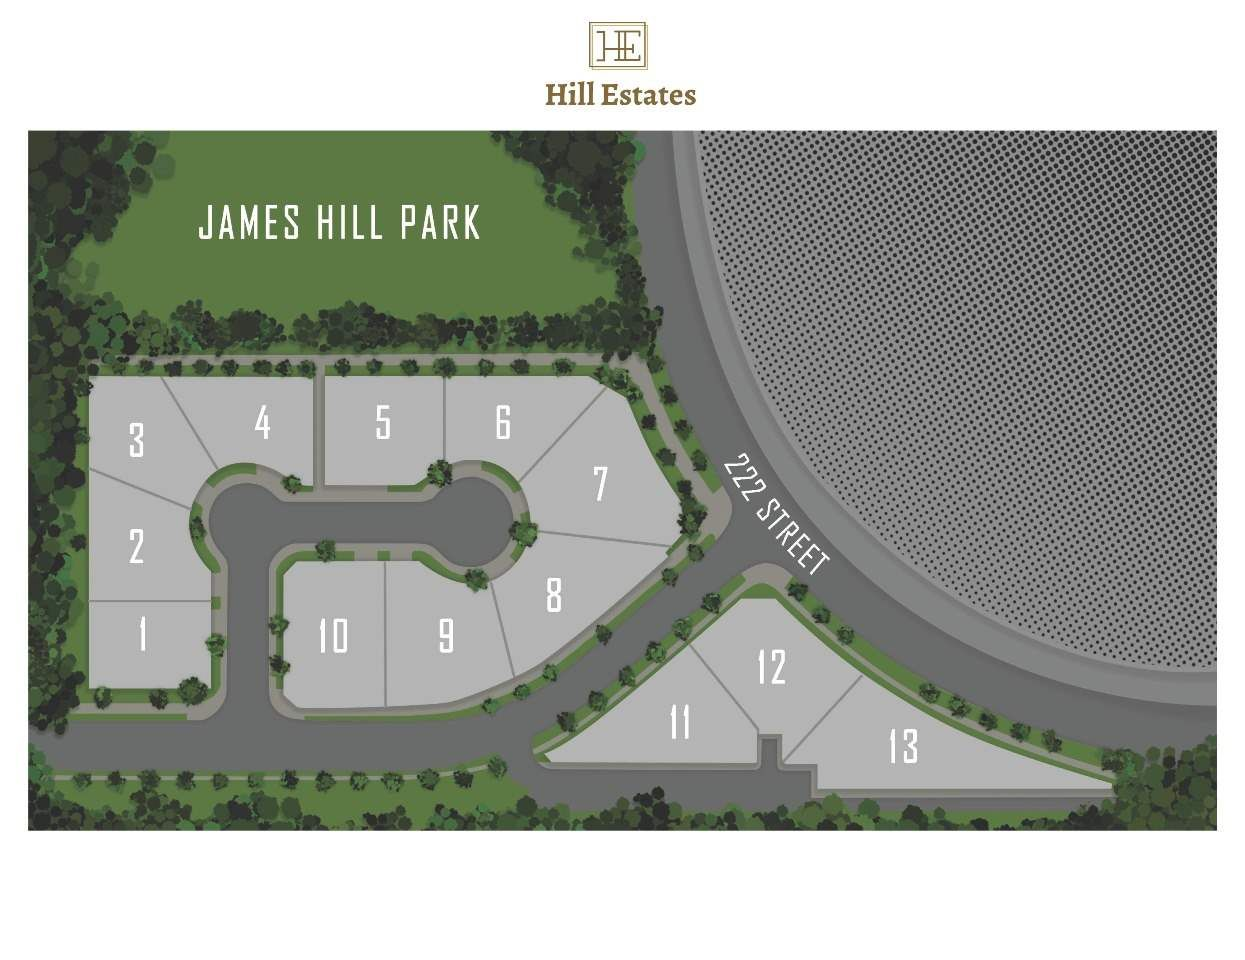 """Main Photo: Lot 10 4467 222 Street in Langley: Murrayville Land for sale in """"Hill Estates"""" : MLS®# R2553824"""